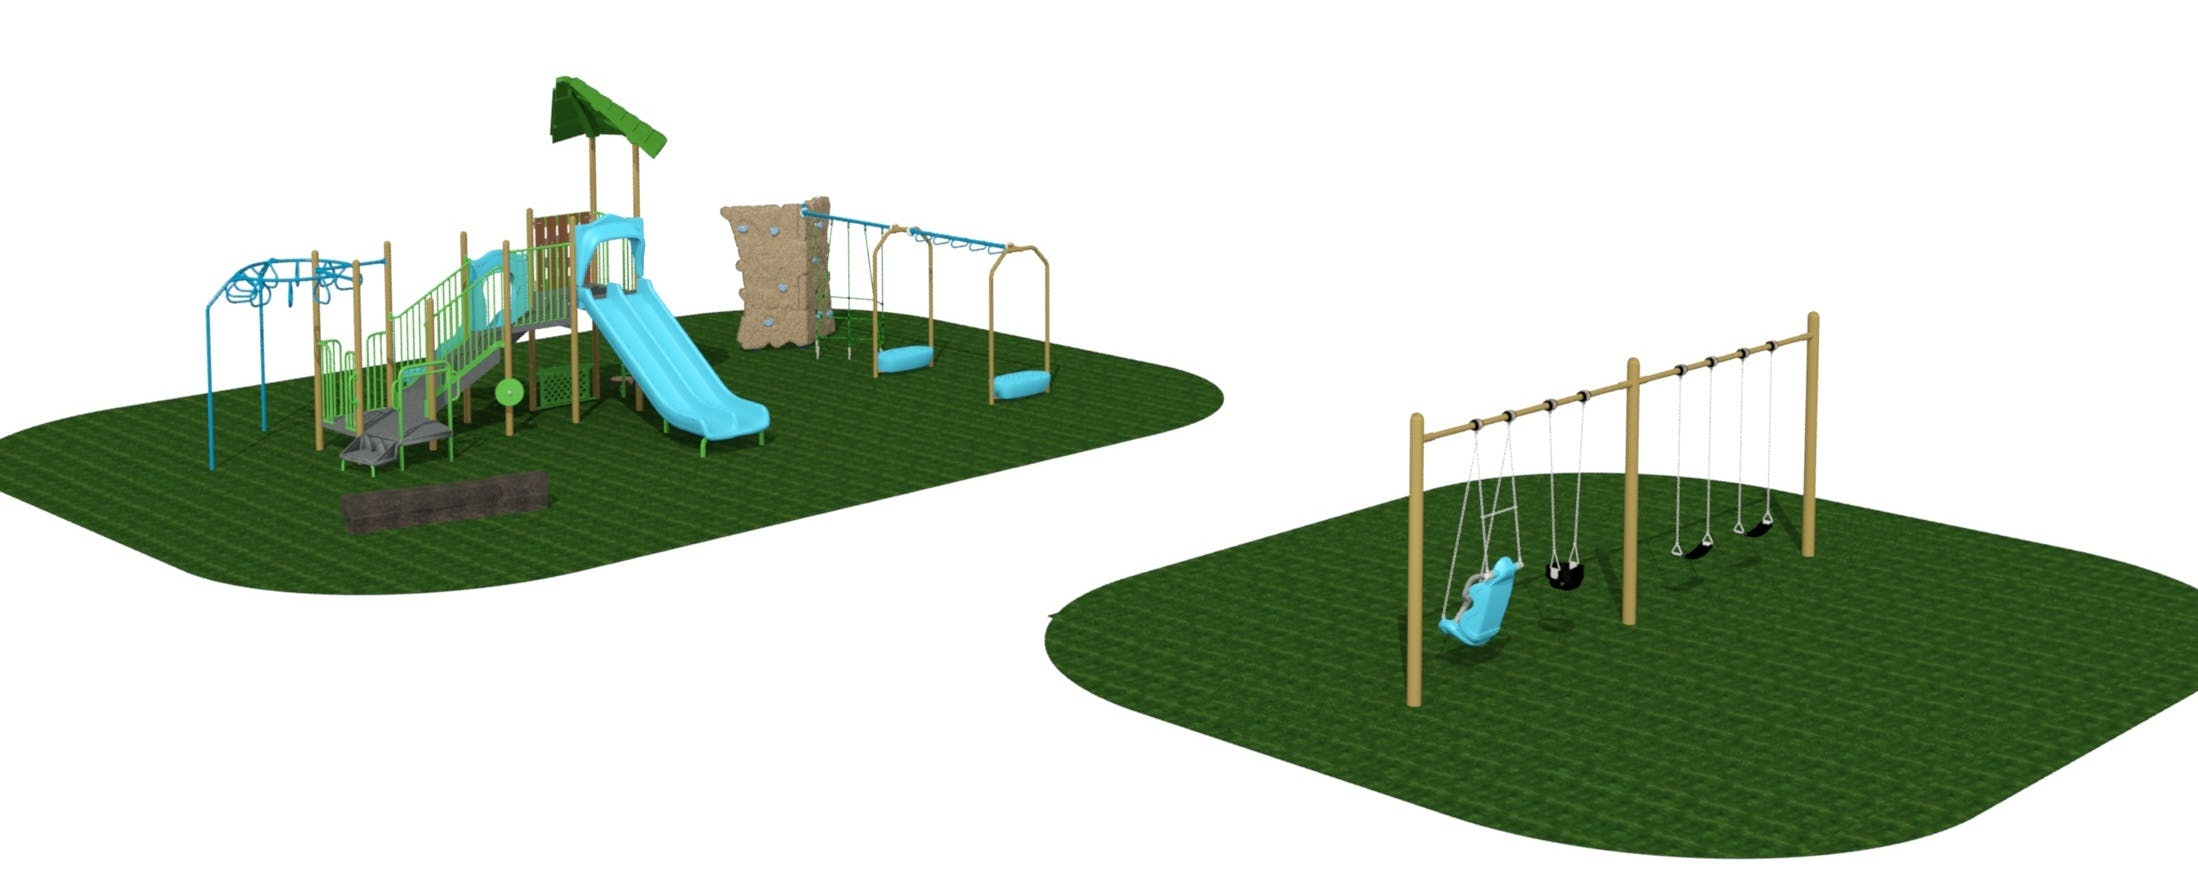 Brookfield Park Playground Rendering